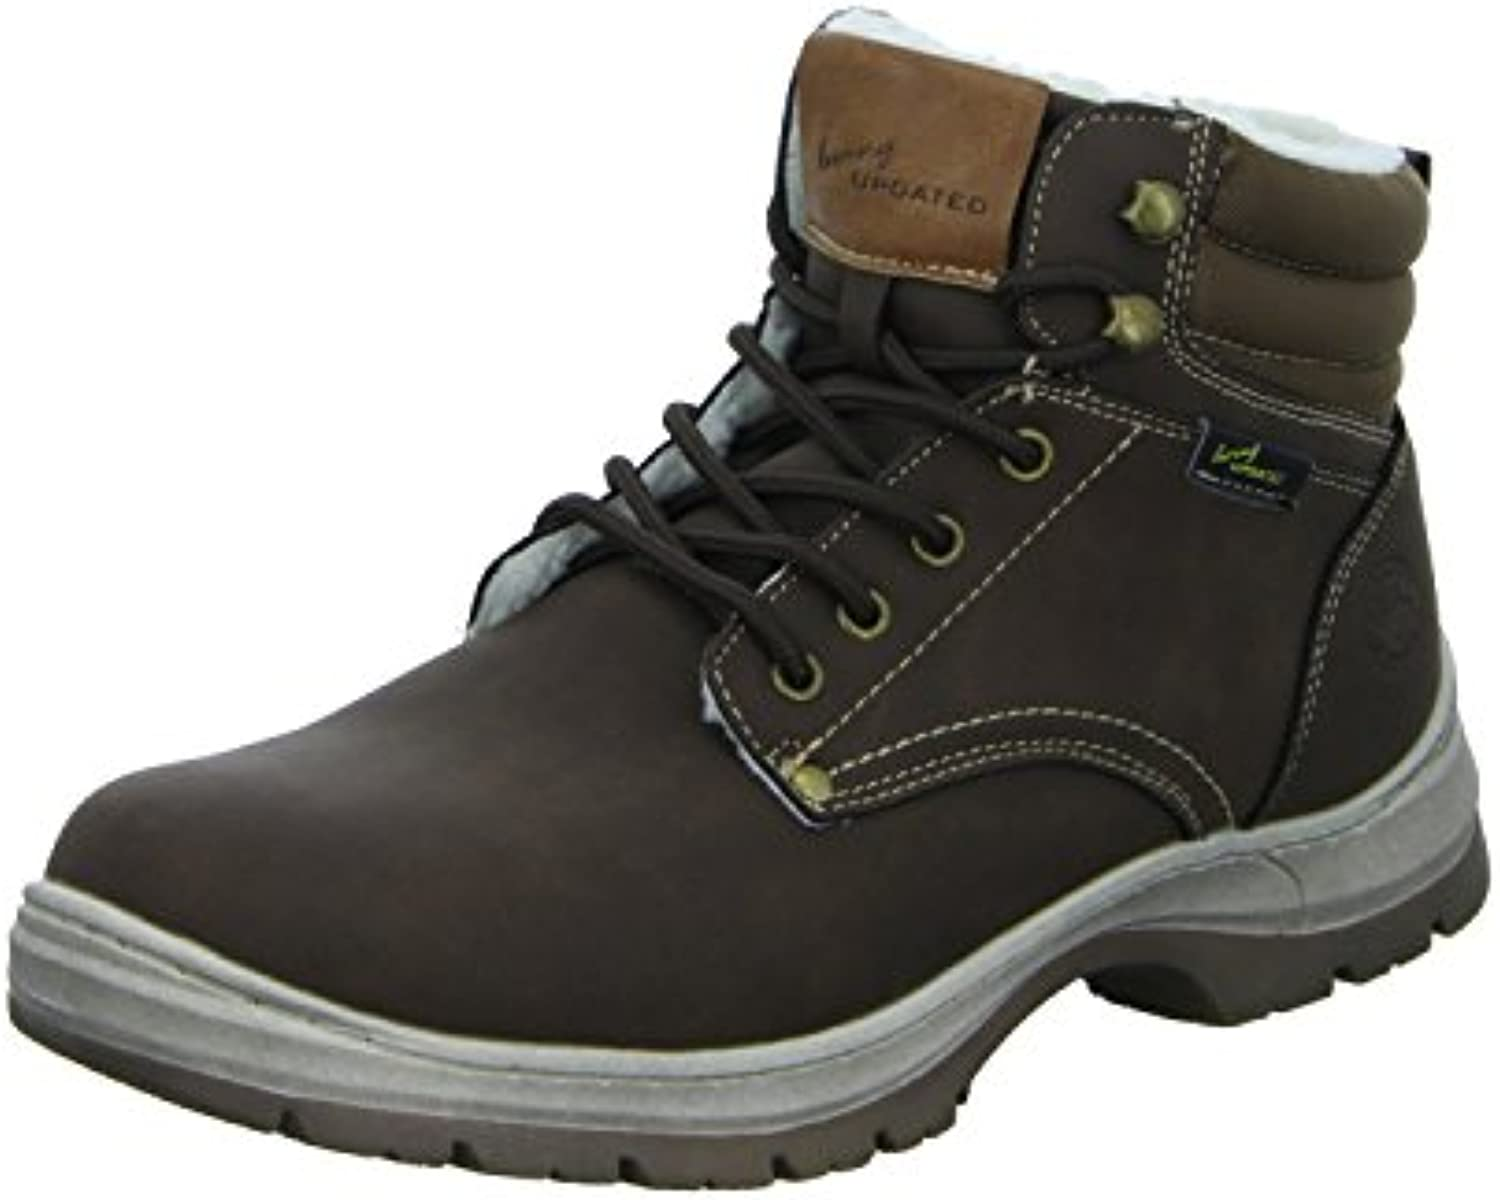 living Updated DA7591C Herren Schnürstiefelette Warmfutter